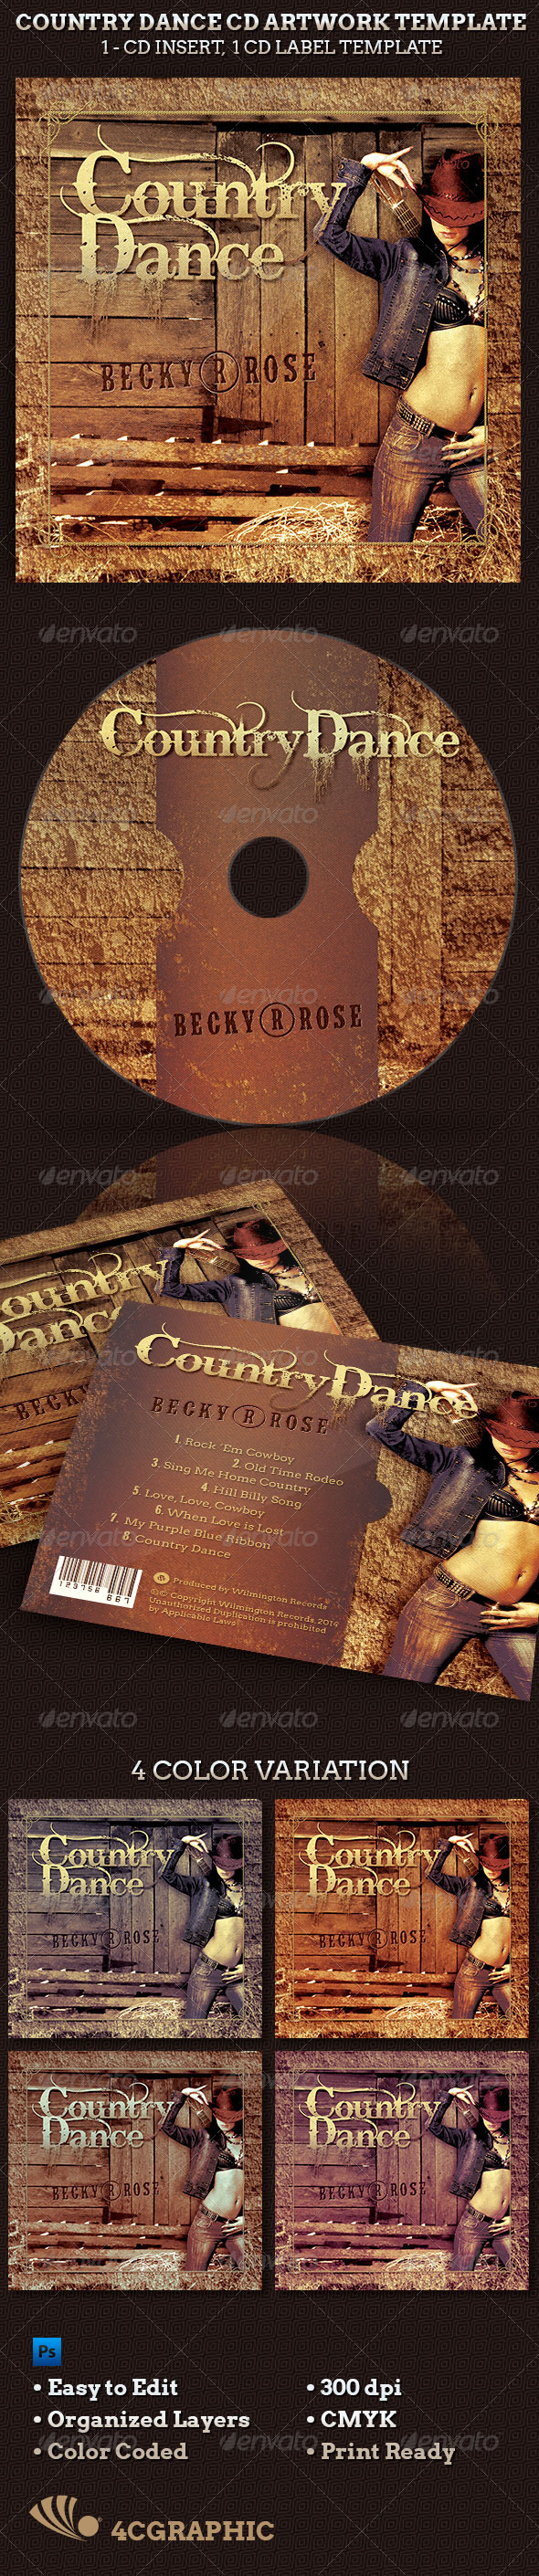 Country Dance Music CD Artwork Template  - CD & DVD artwork Print Templates